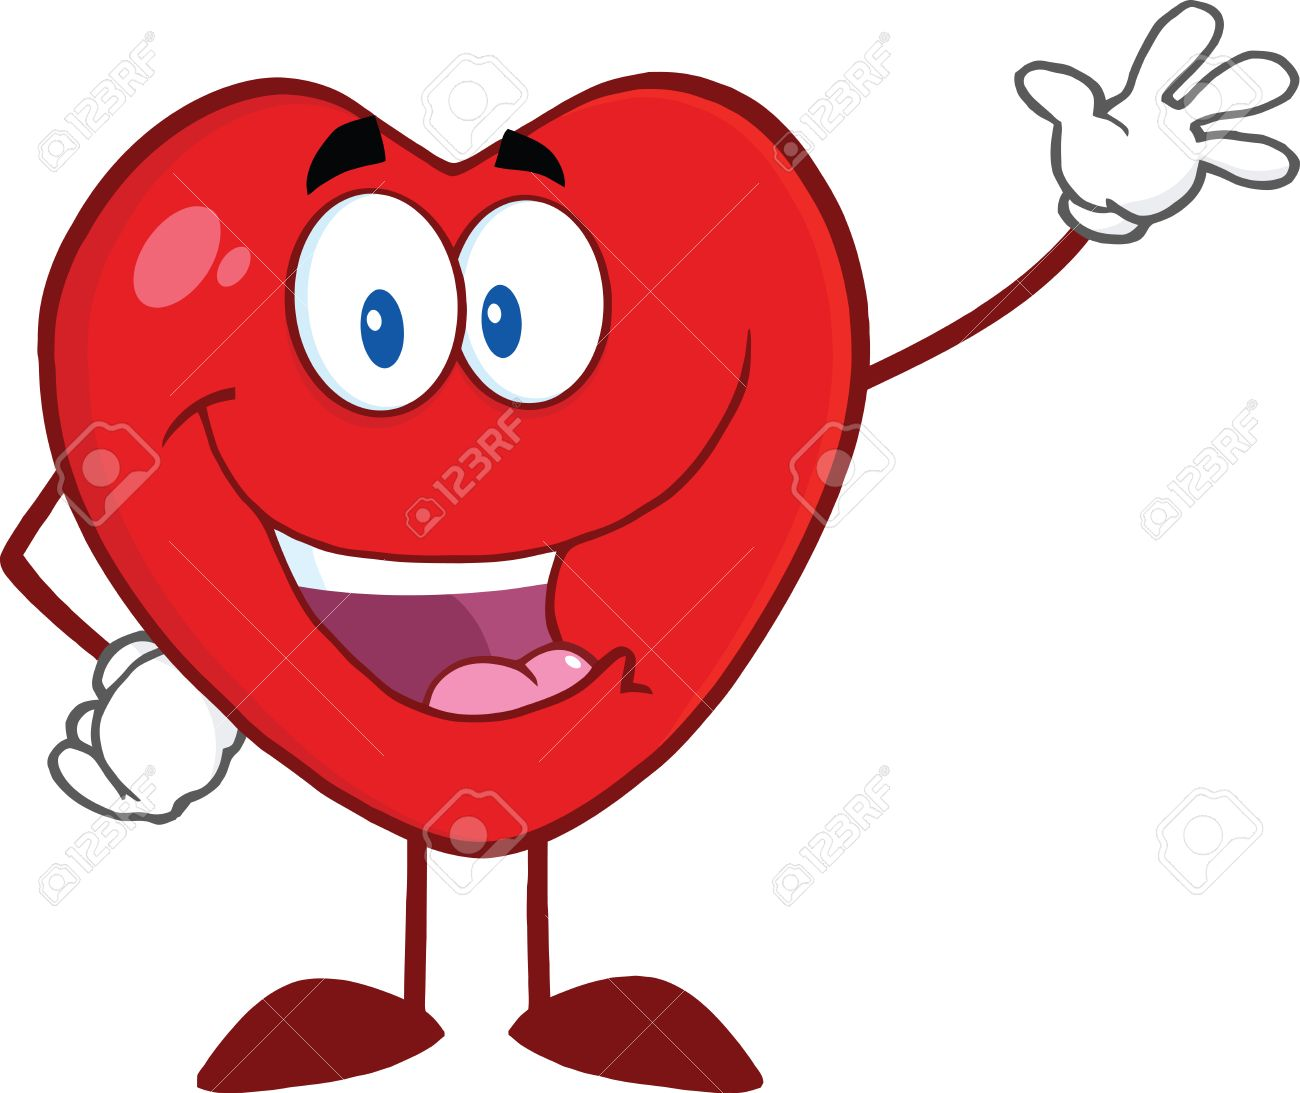 Happy heart clipart 1 » Clipart Station.